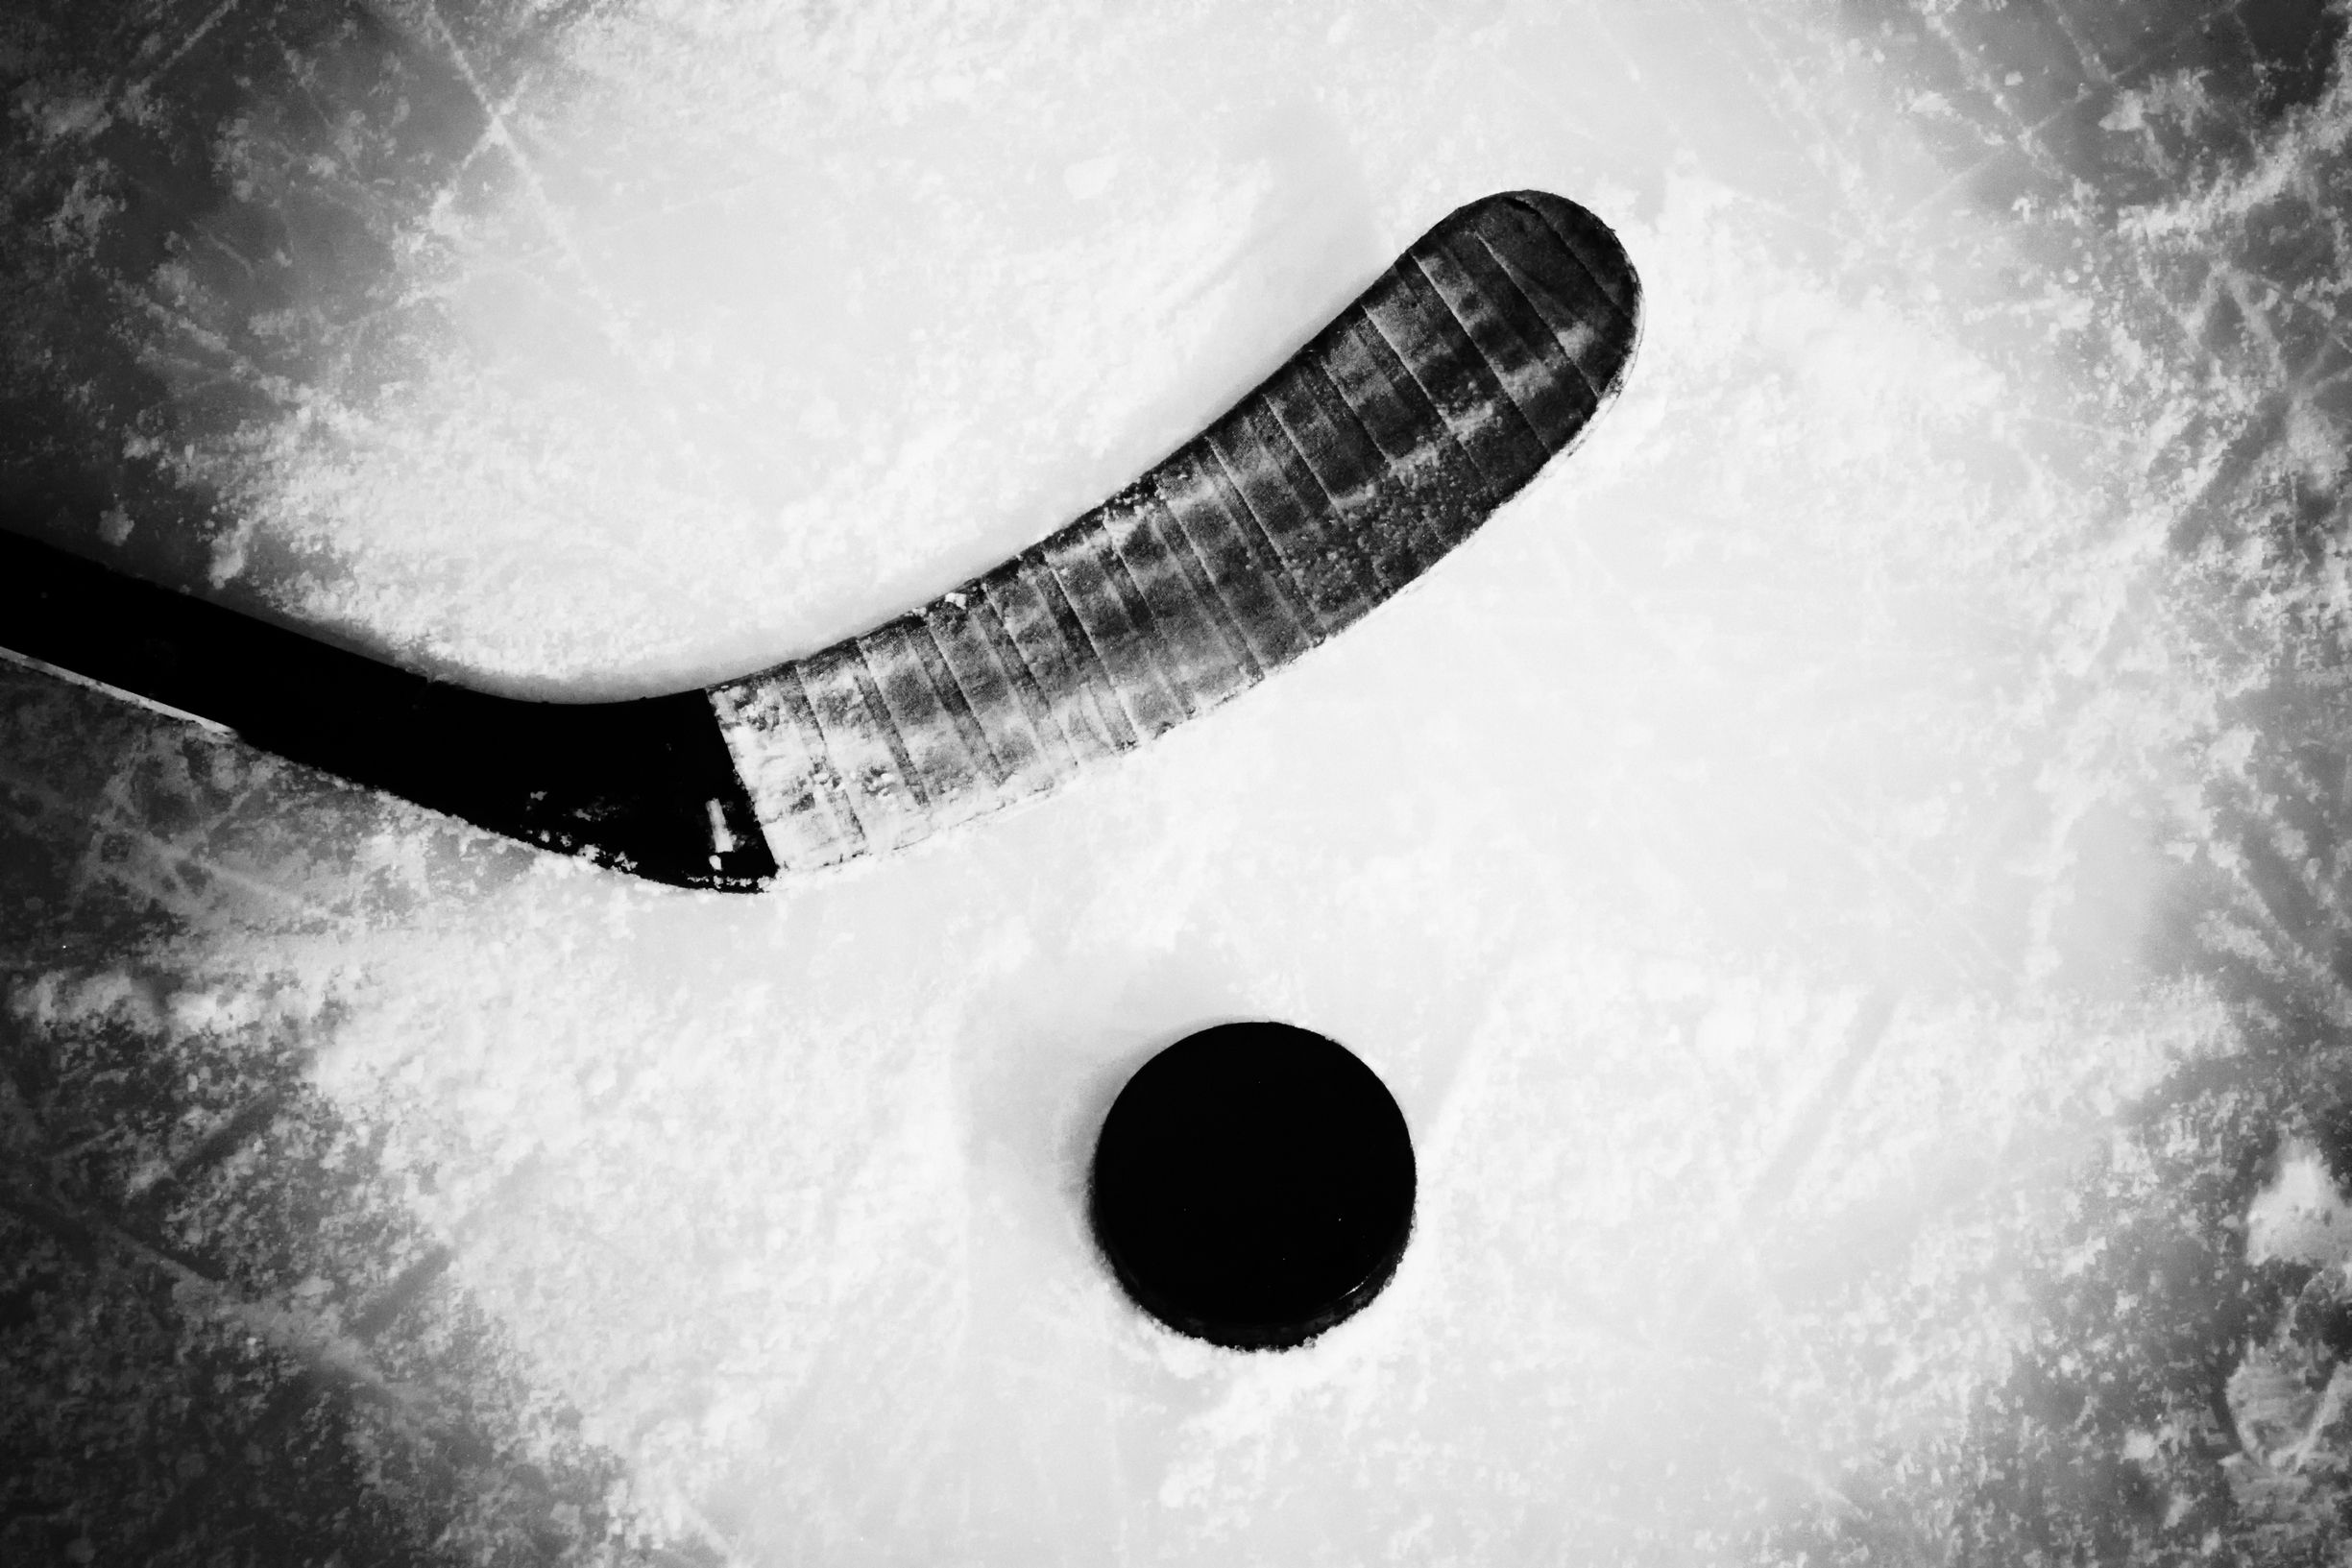 2449x1633 - Hockey Wallpapers 11